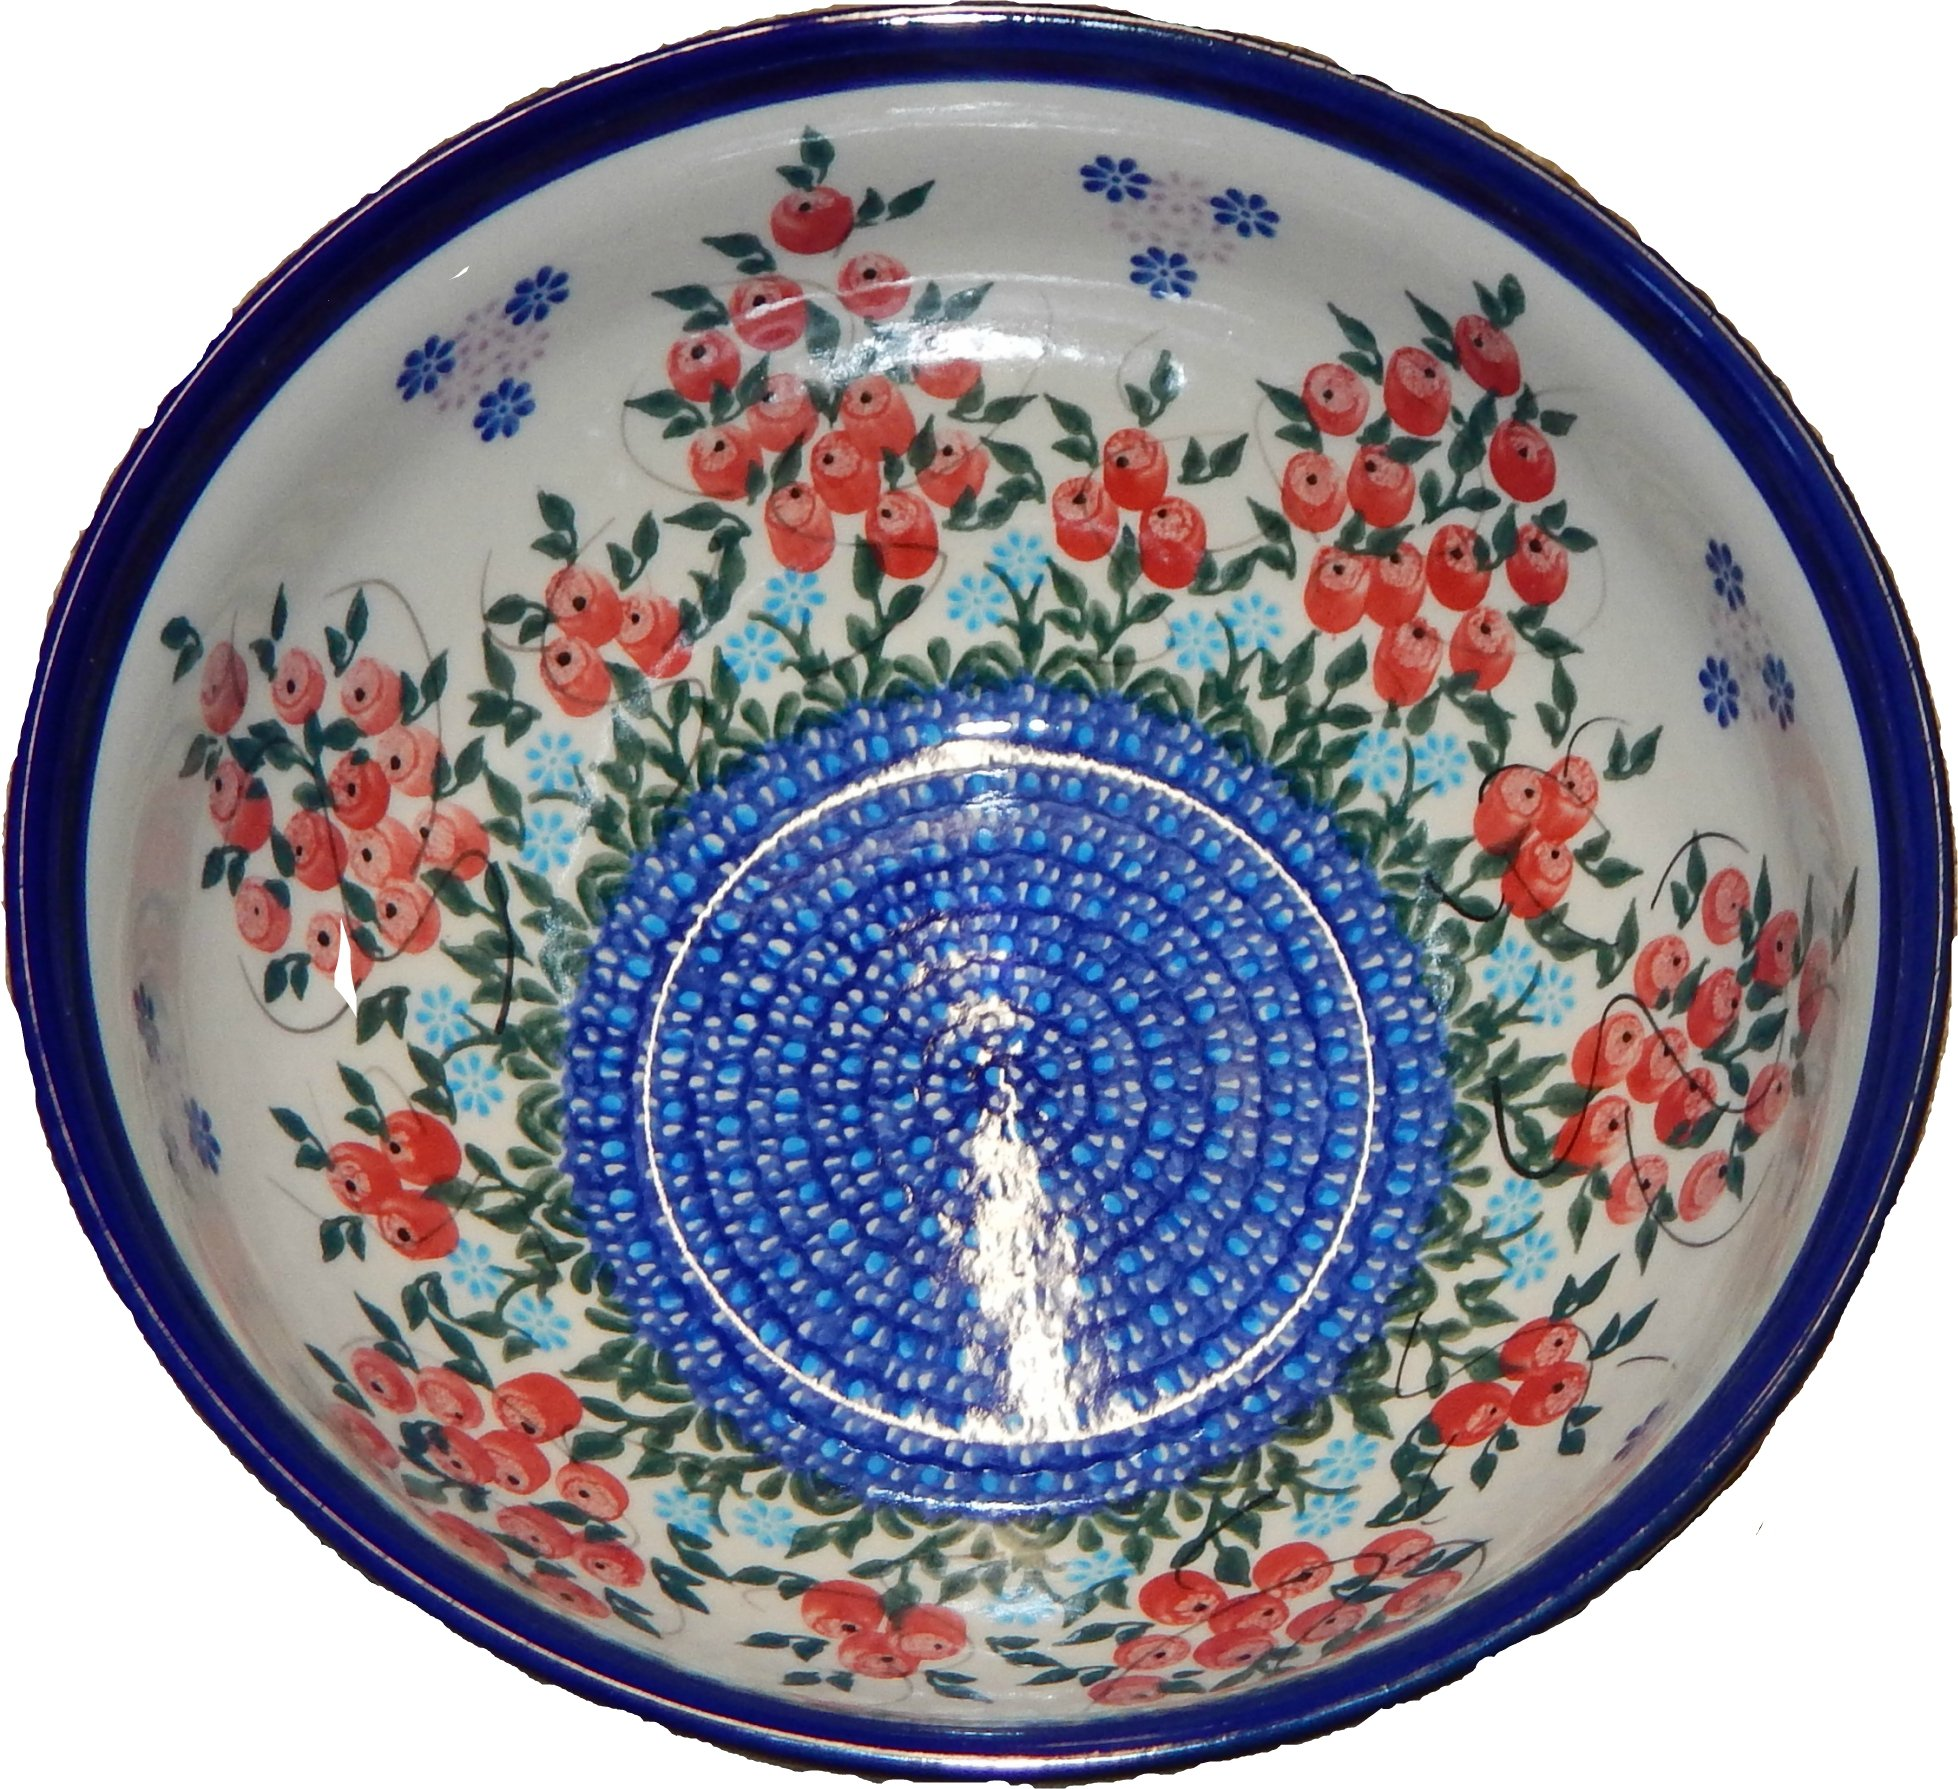 Polish Pottery Ceramika Boleslawiec 0410/282 Royal Blue Patterns 5-1/4-Cup Bowl, Red Berries and Daisies